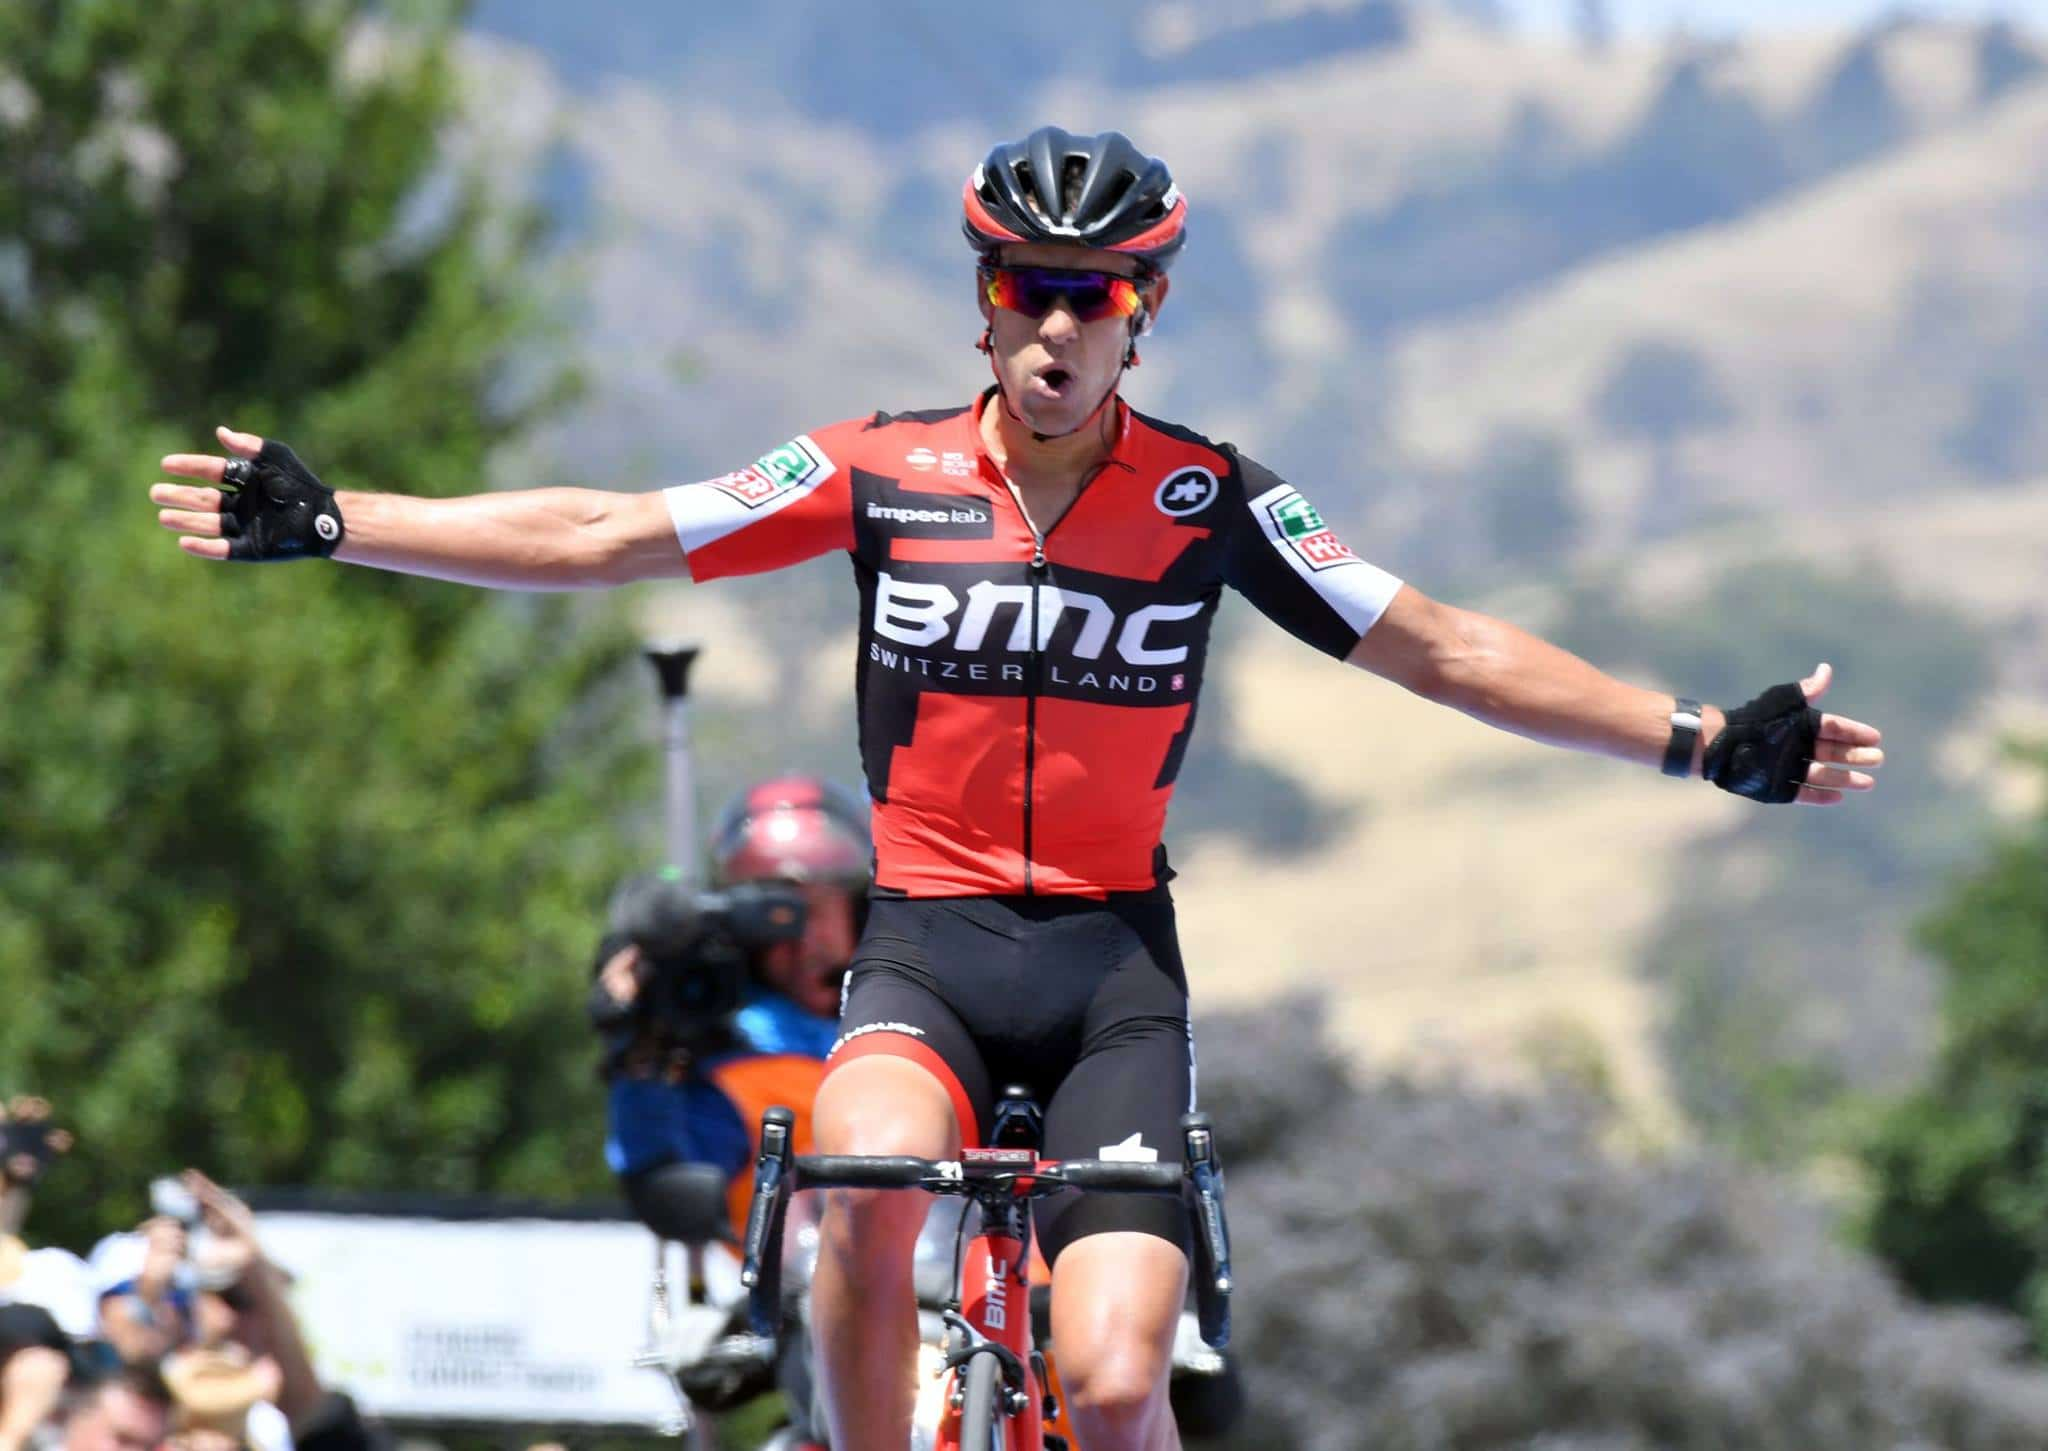 Crit rium du dauphin 2017 du costaud pour bmc et richie for Richie porte and bmc